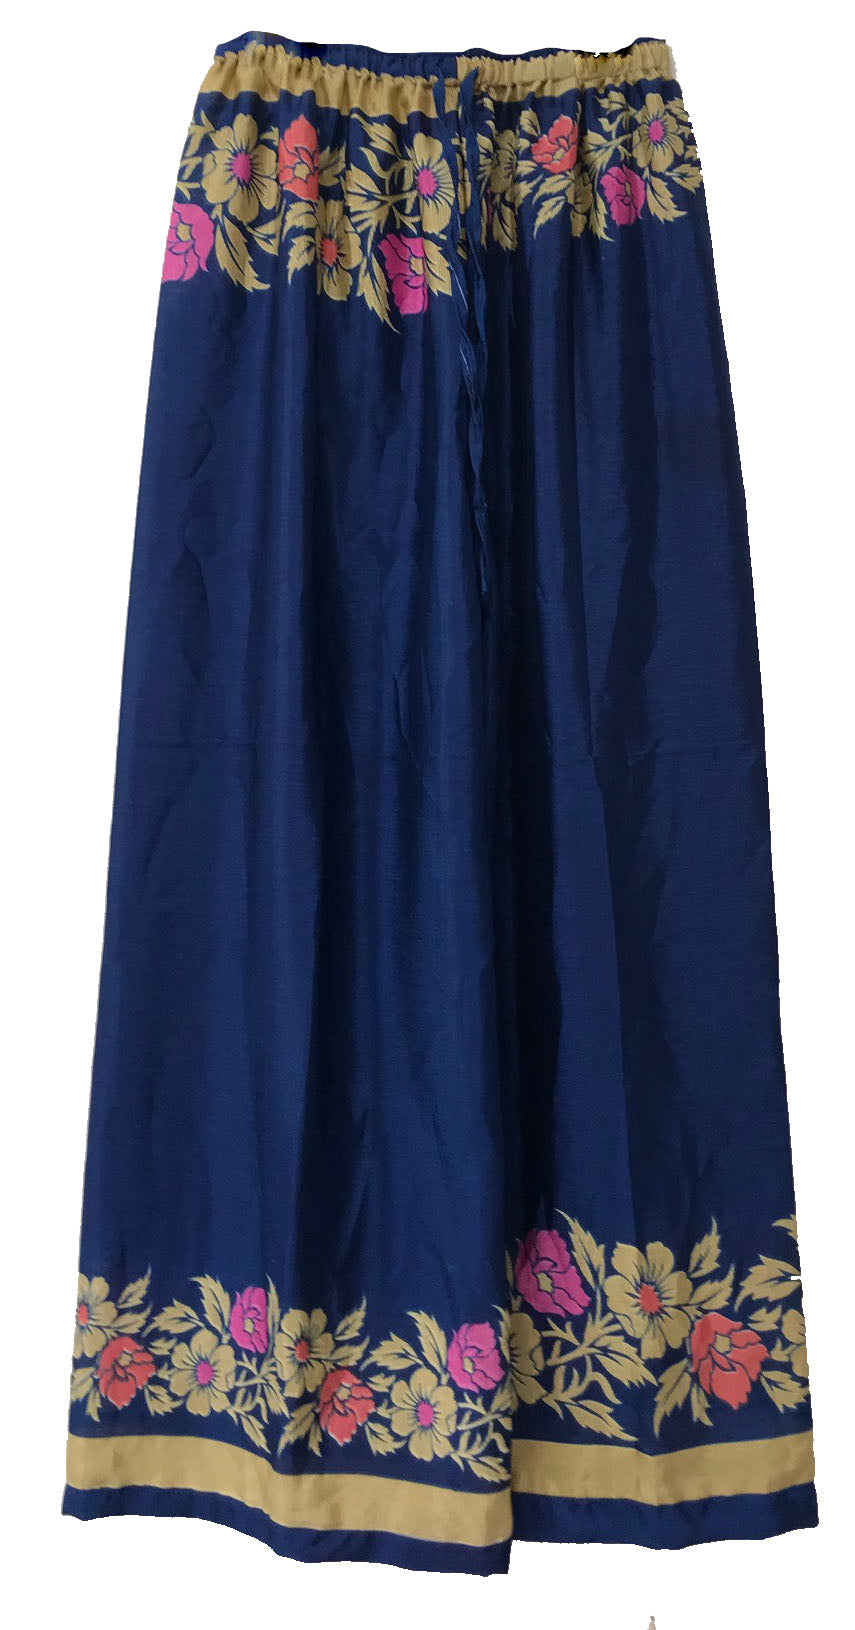 Floral Elastic Pants in royal blue